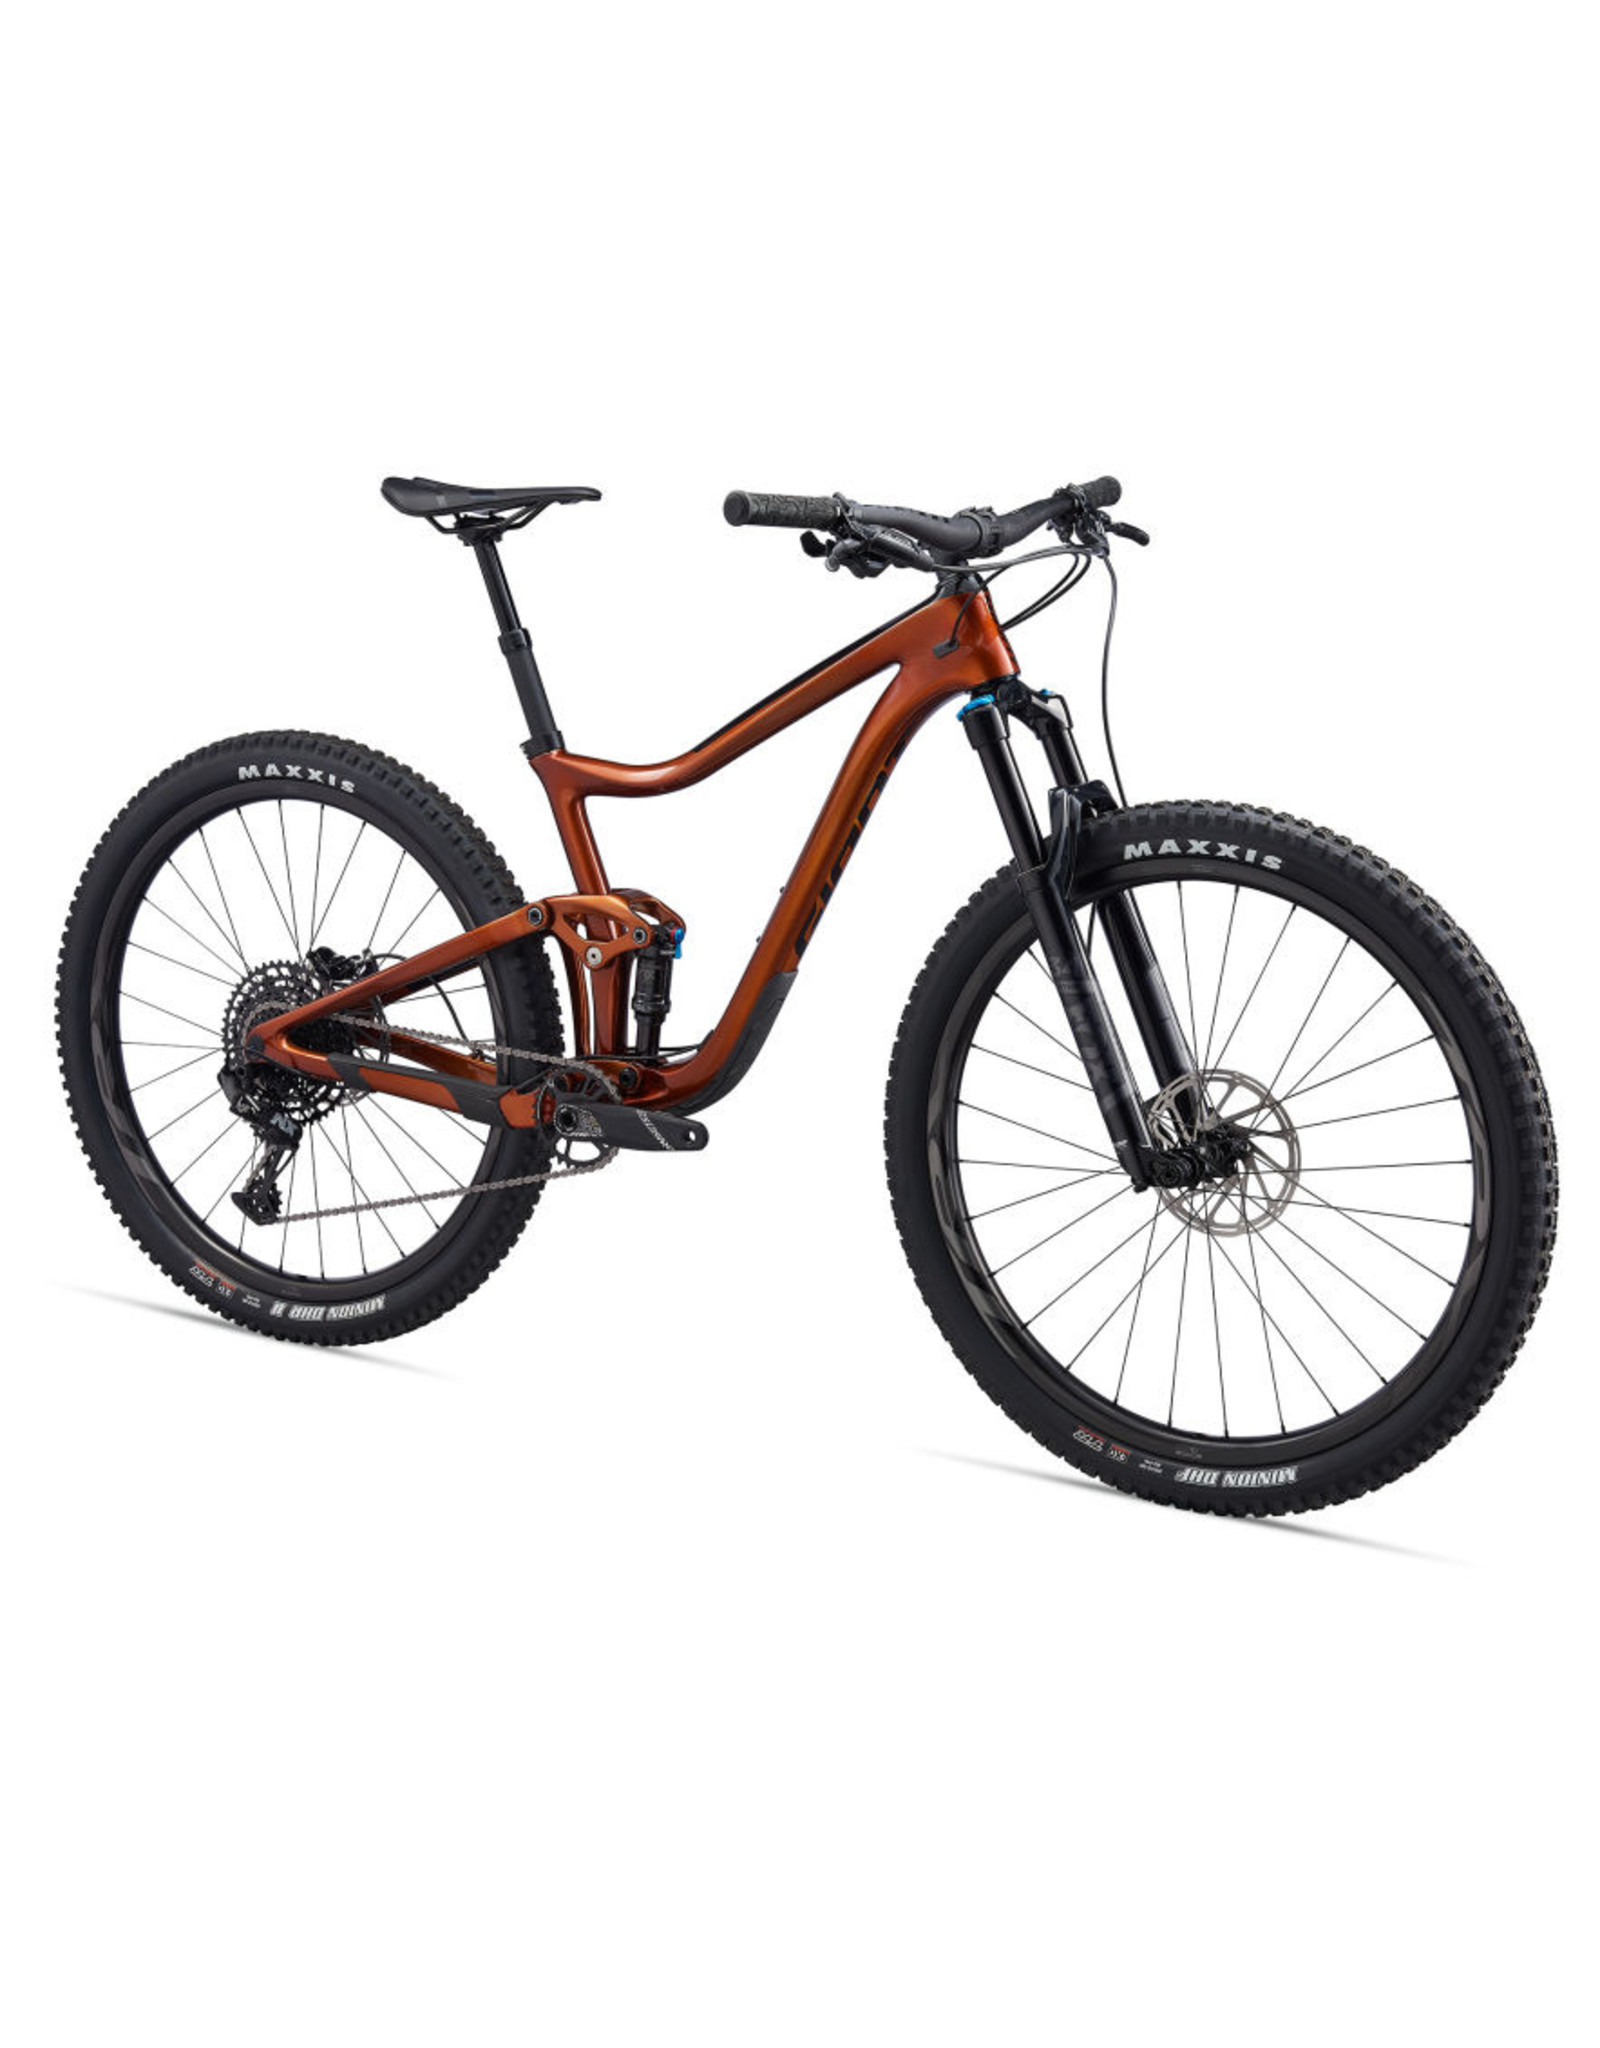 Giant 2020 Giant Trance advanced Pro 29 2